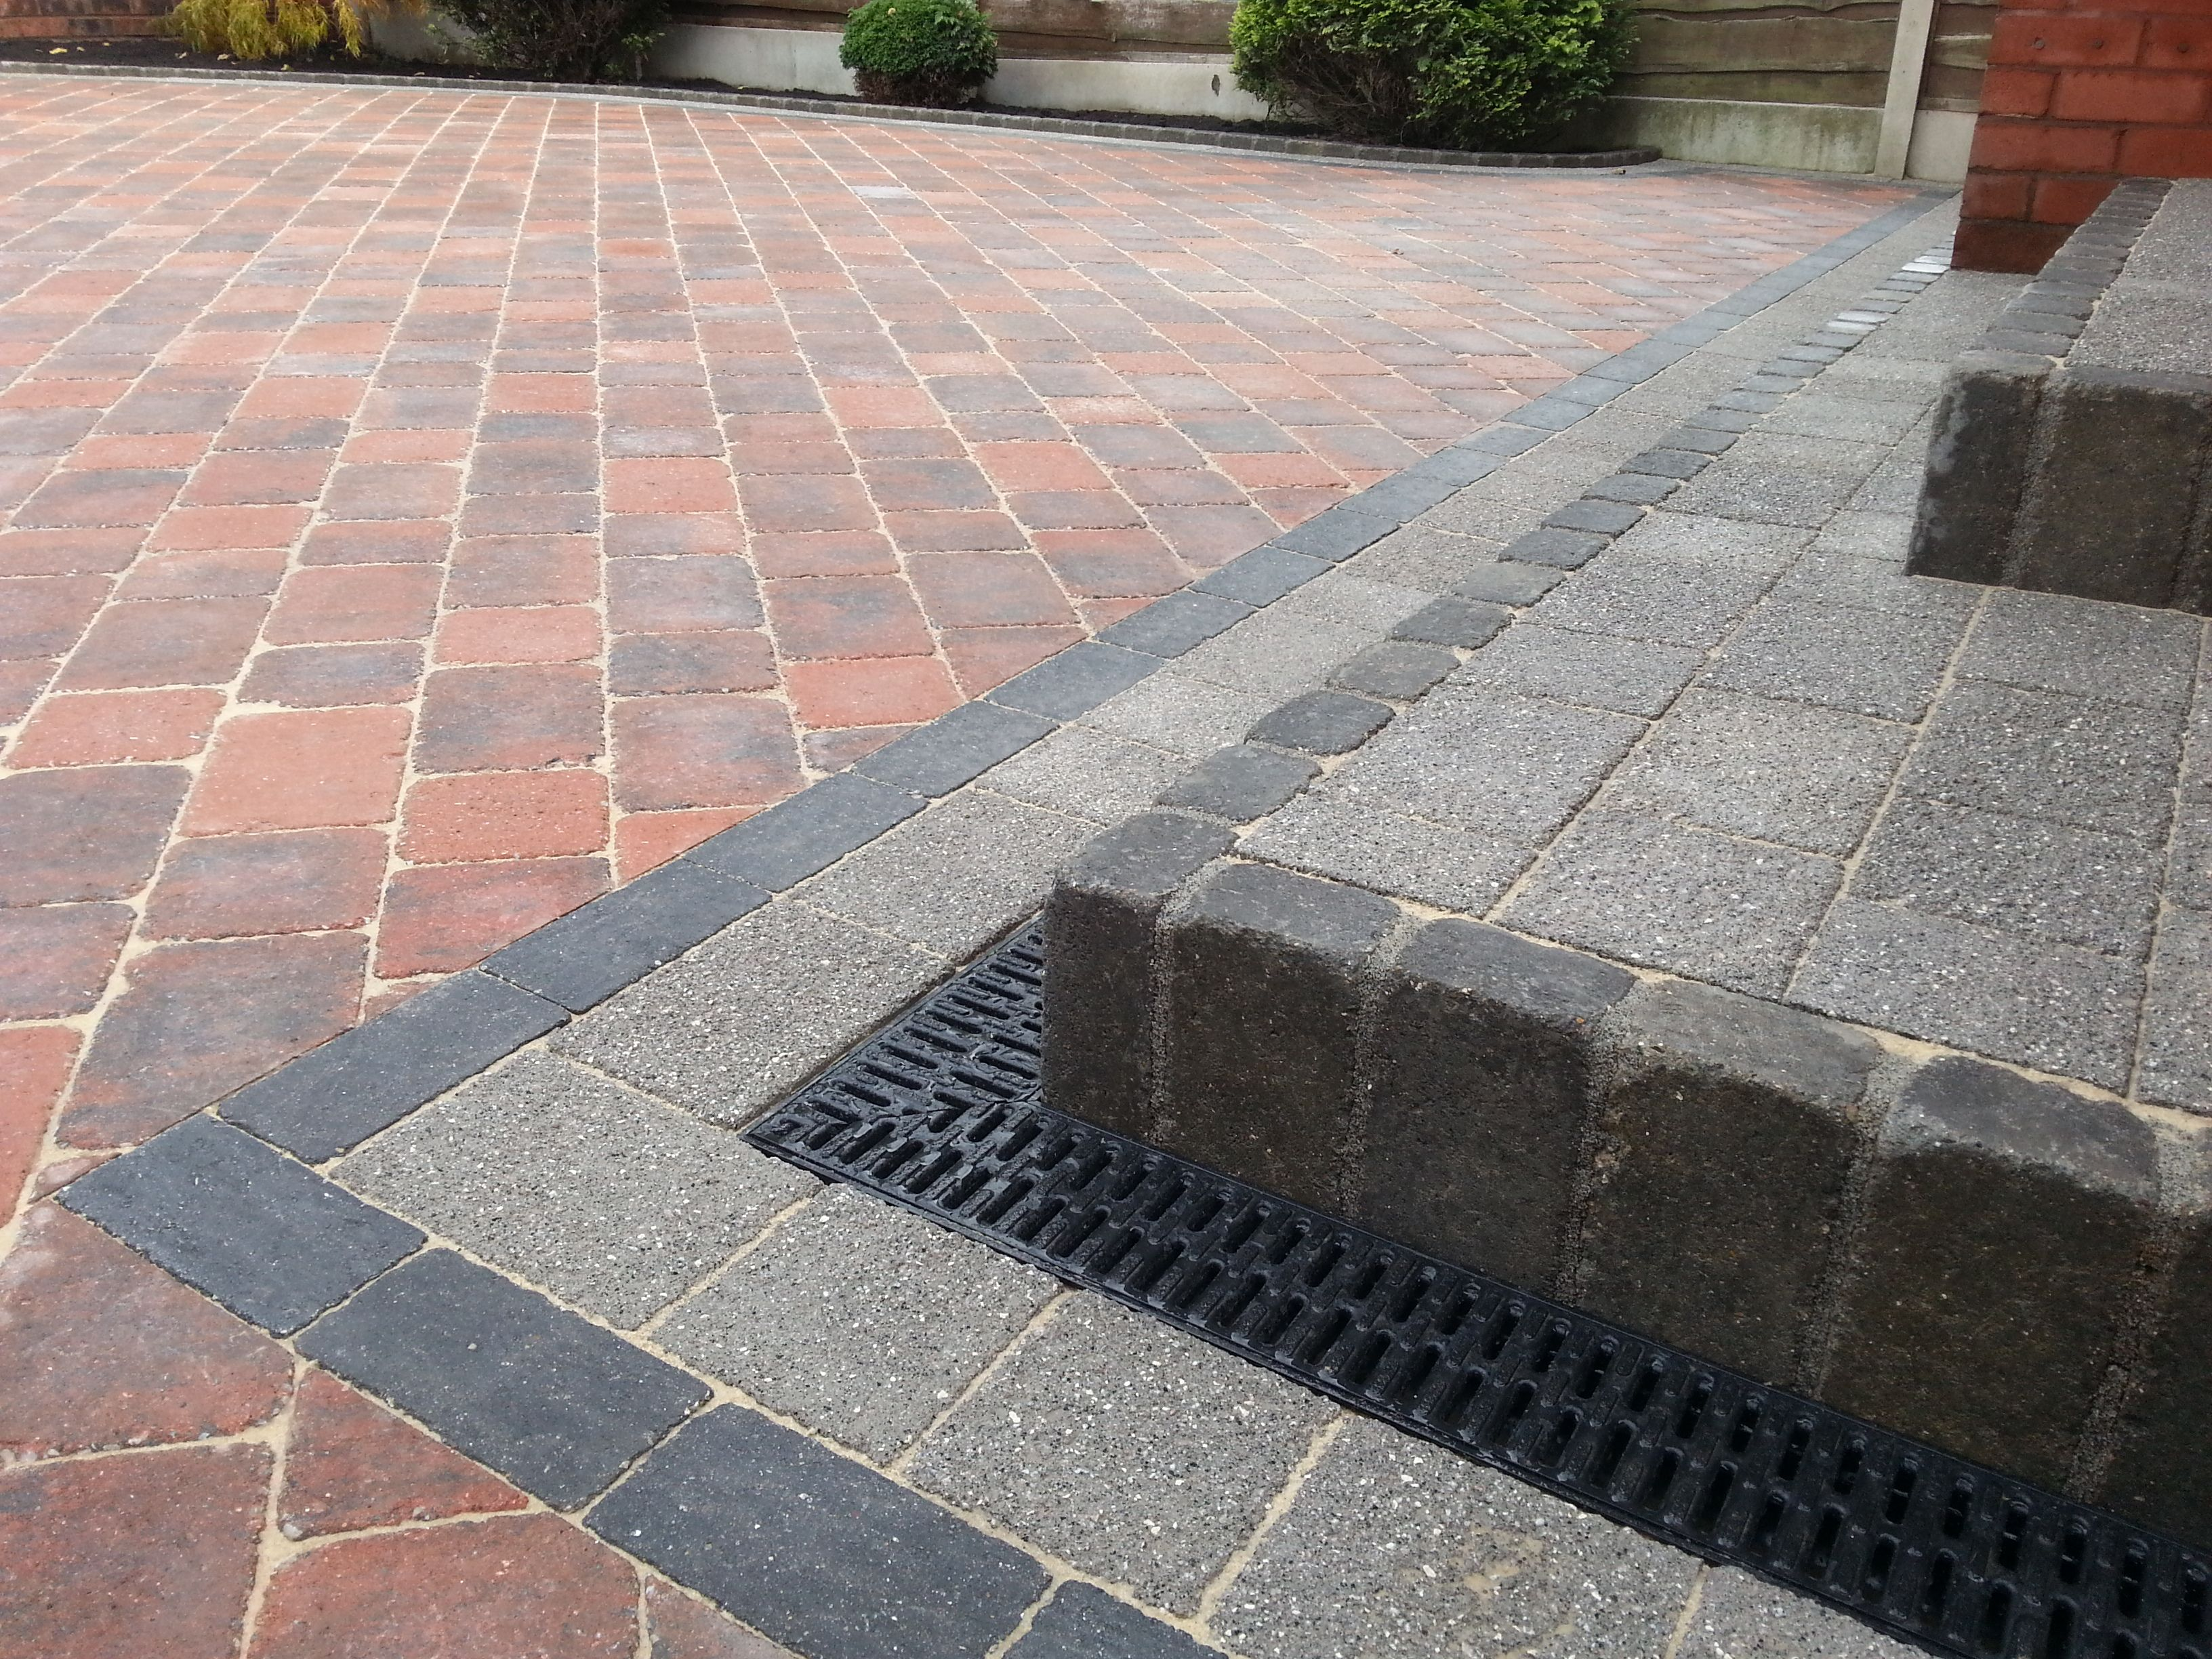 new driveway in manchester using marshalls drivesett duo. Black Bedroom Furniture Sets. Home Design Ideas